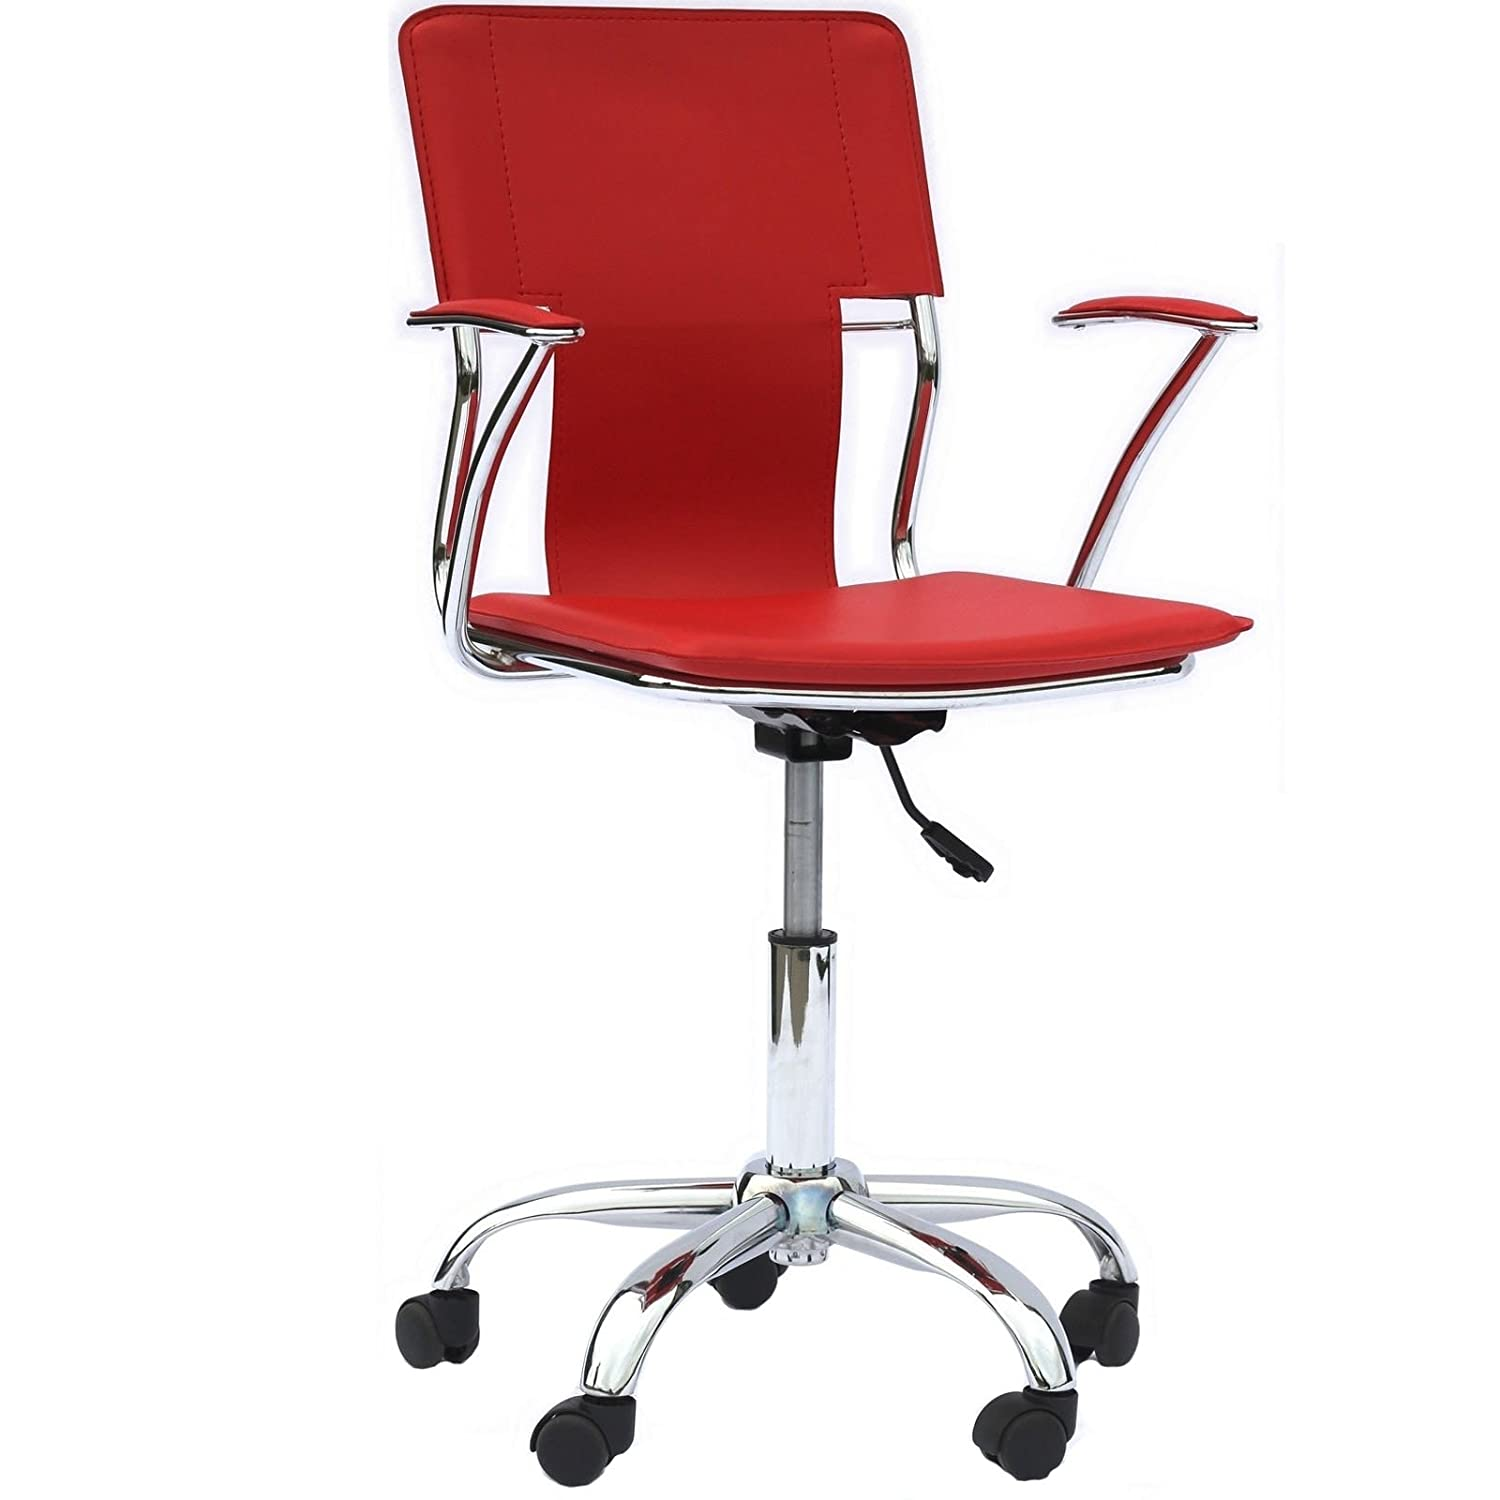 seat office chair pu itm red leather desk bucket racing executive style